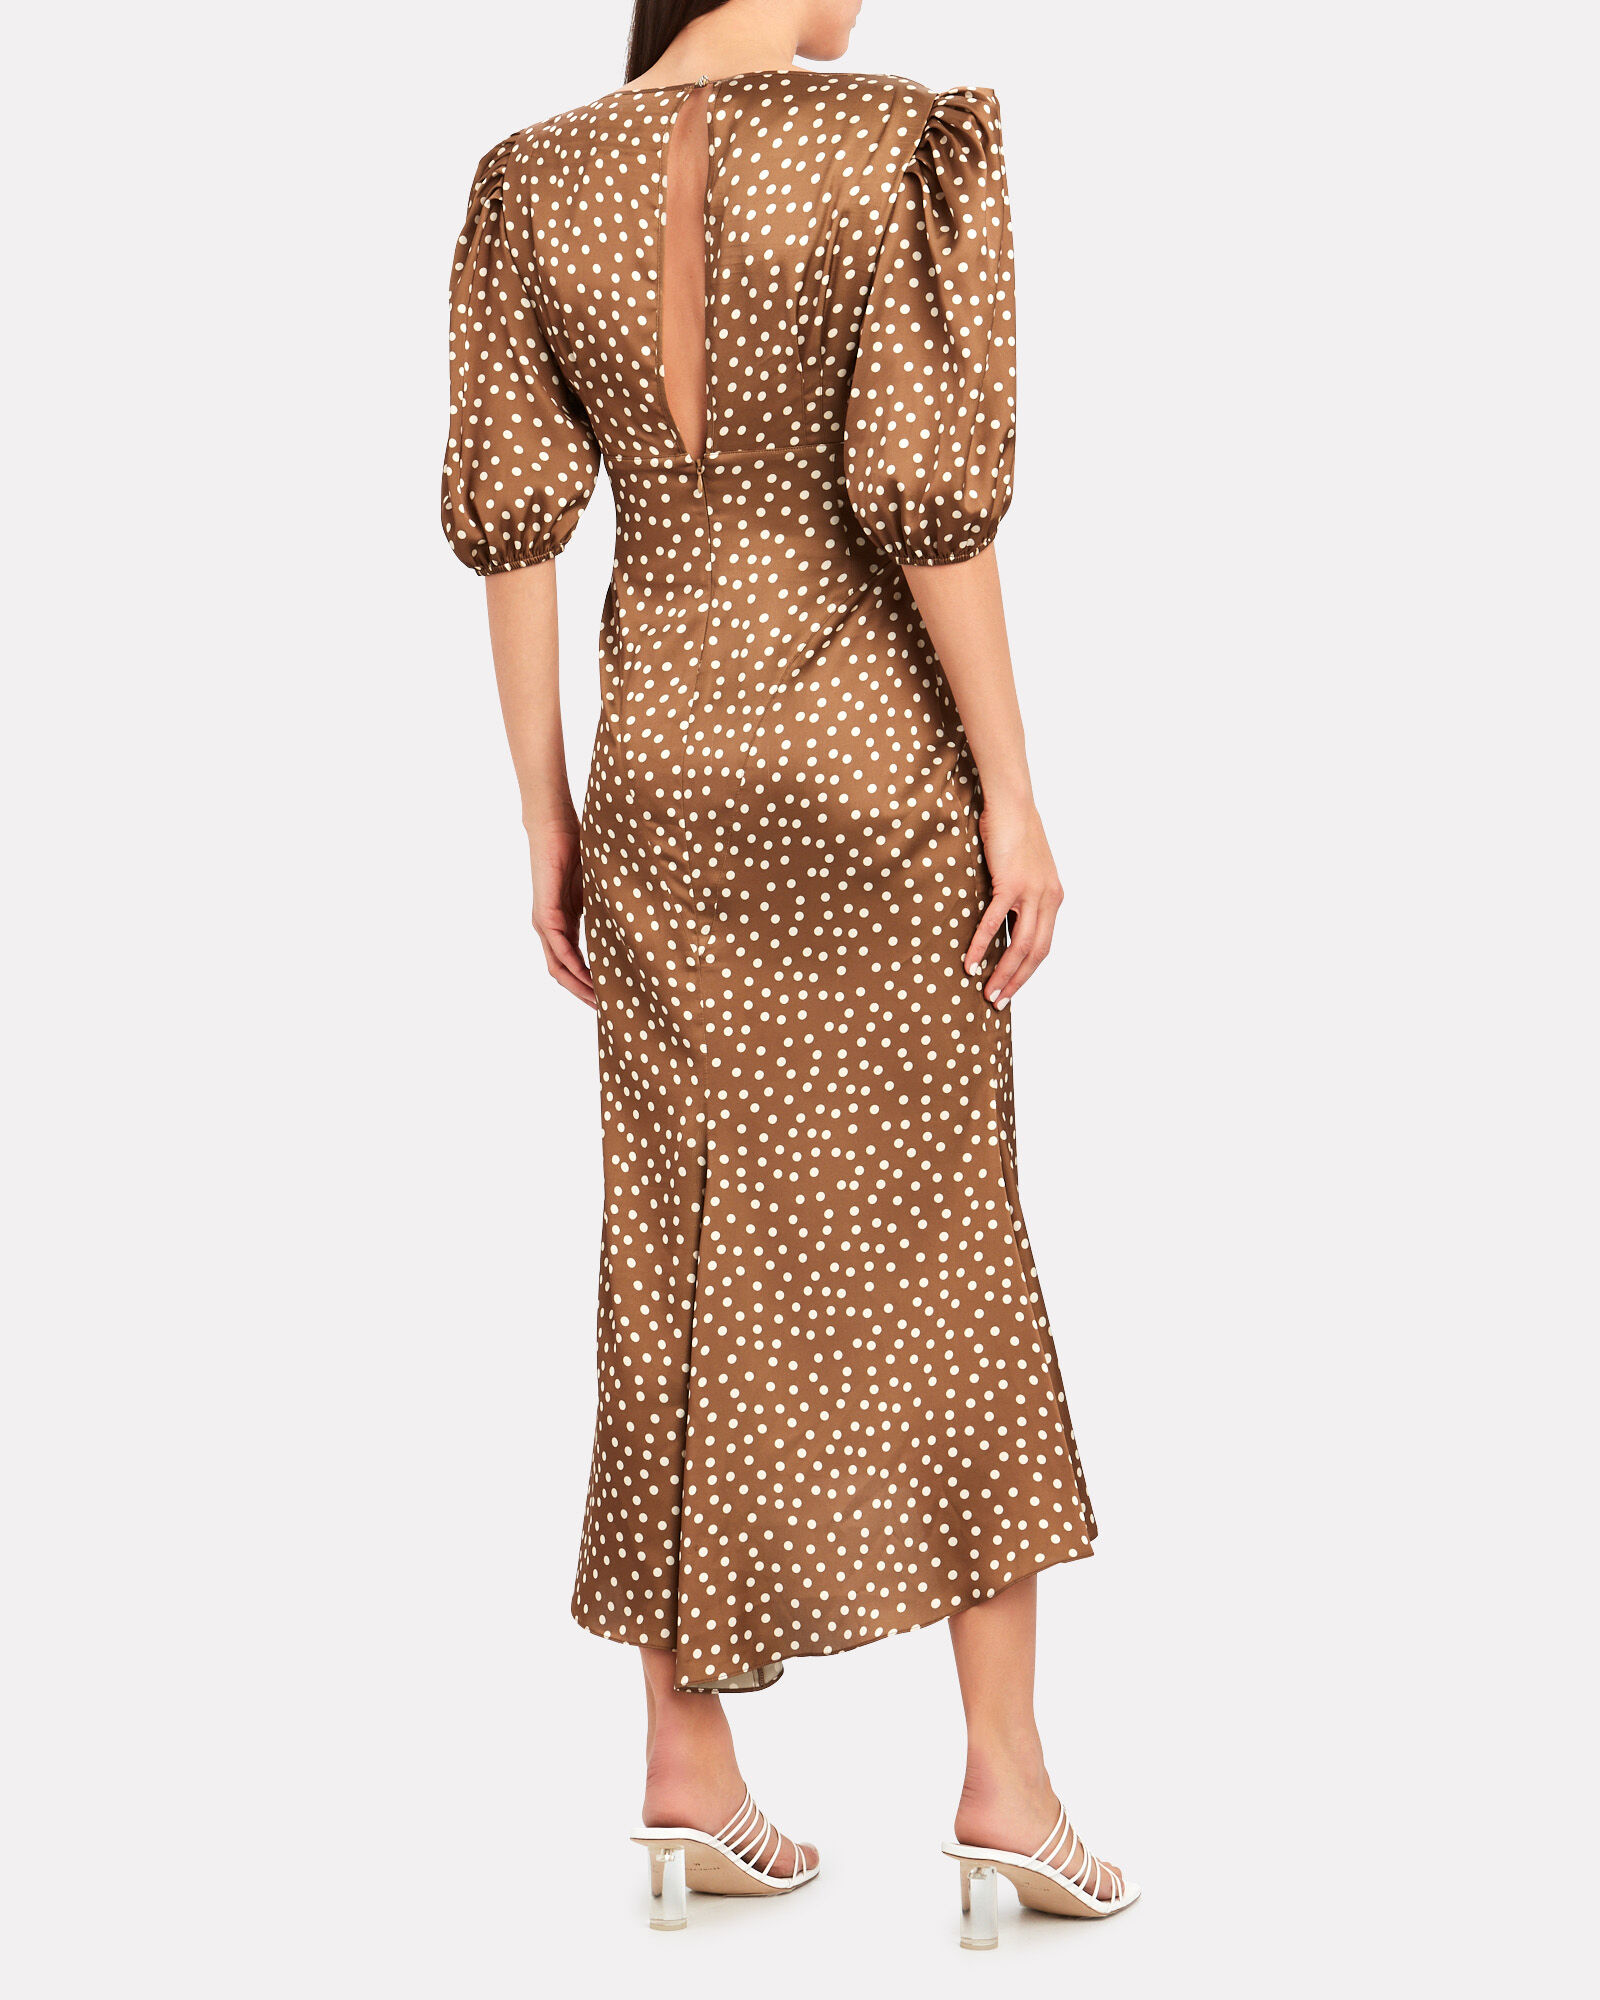 Callie Polka Dot Chiffon Dress, PECAN/POLKA DOT, hi-res